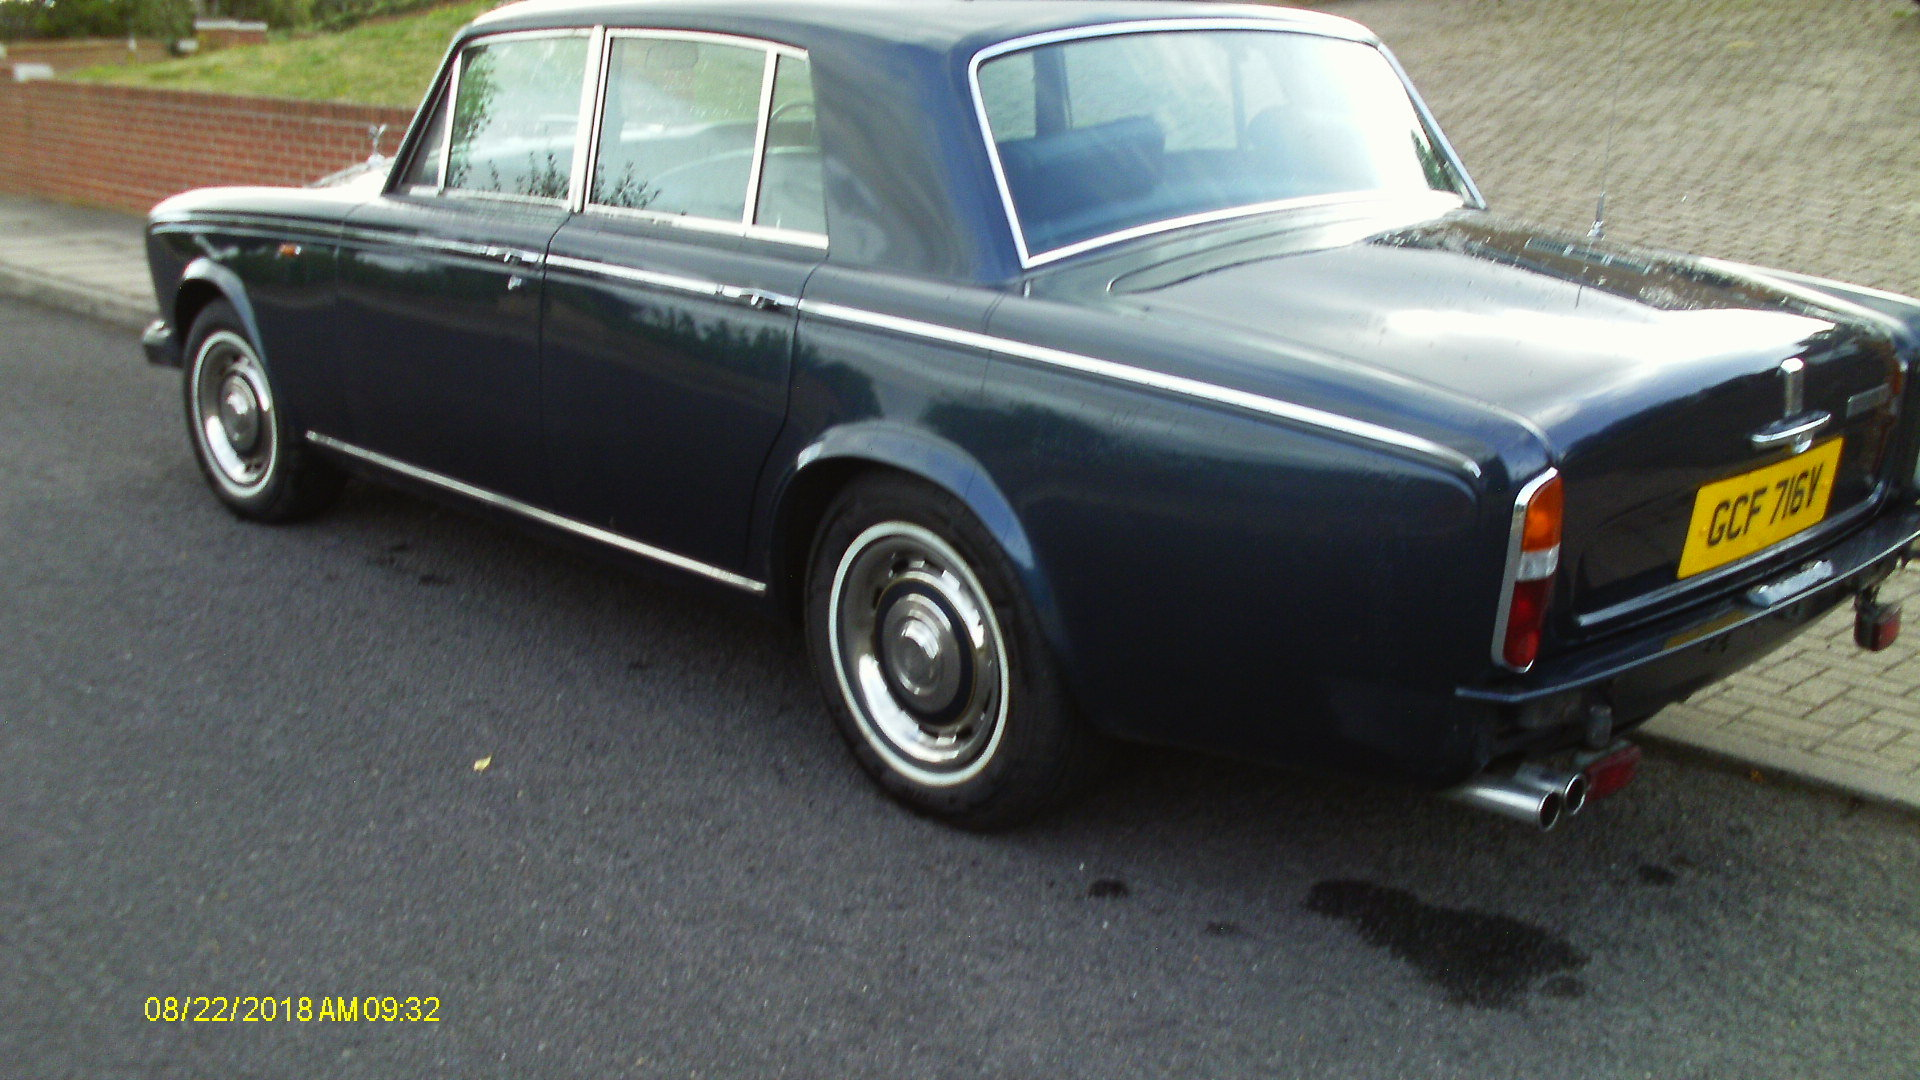 1979 rolls royce shadow 2  may p/x  why For Sale (picture 3 of 6)